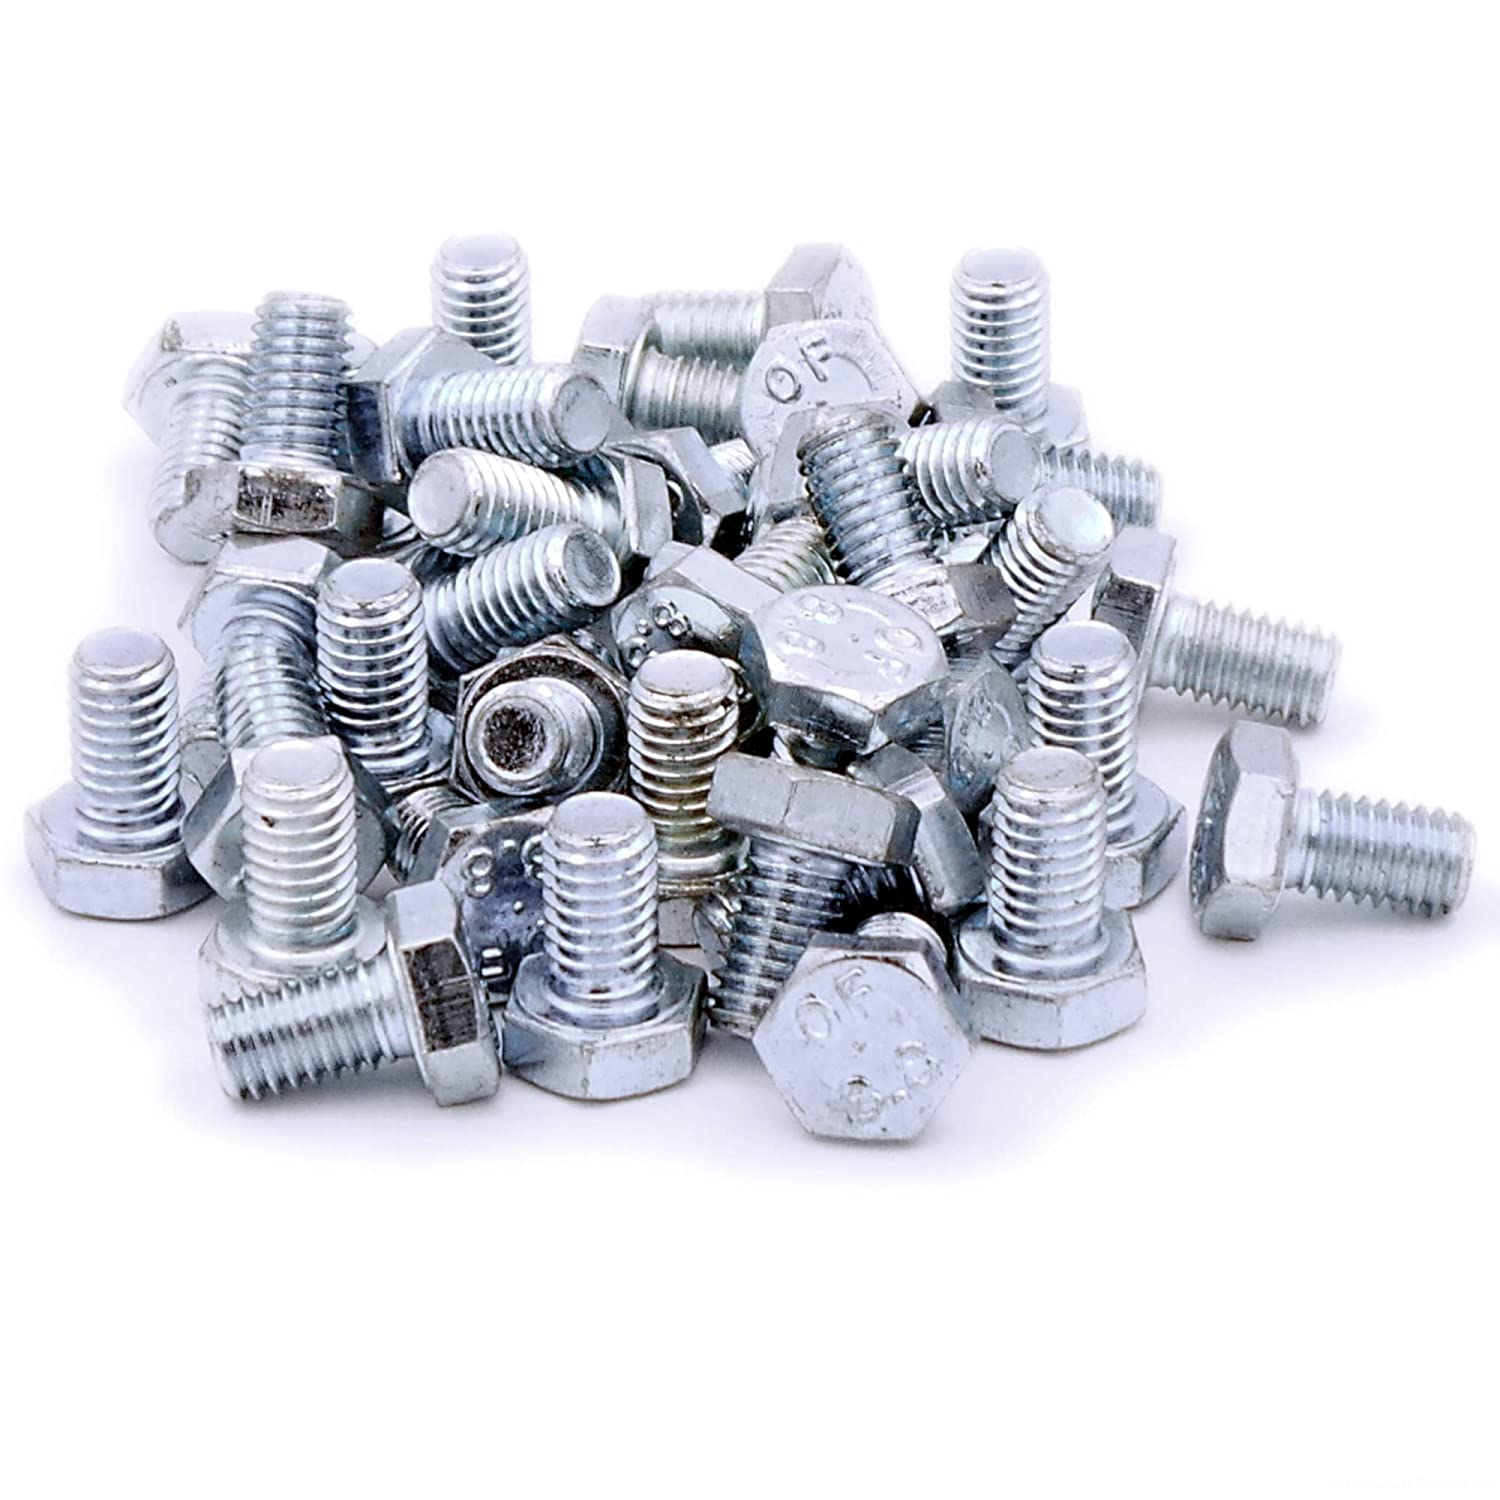 M6 (6mm x 30mm) Hex Bolts (Fully Threaded Setscrew) - Stainless Steel (A2) (Pack of 20) Singularity Supplies Ltd